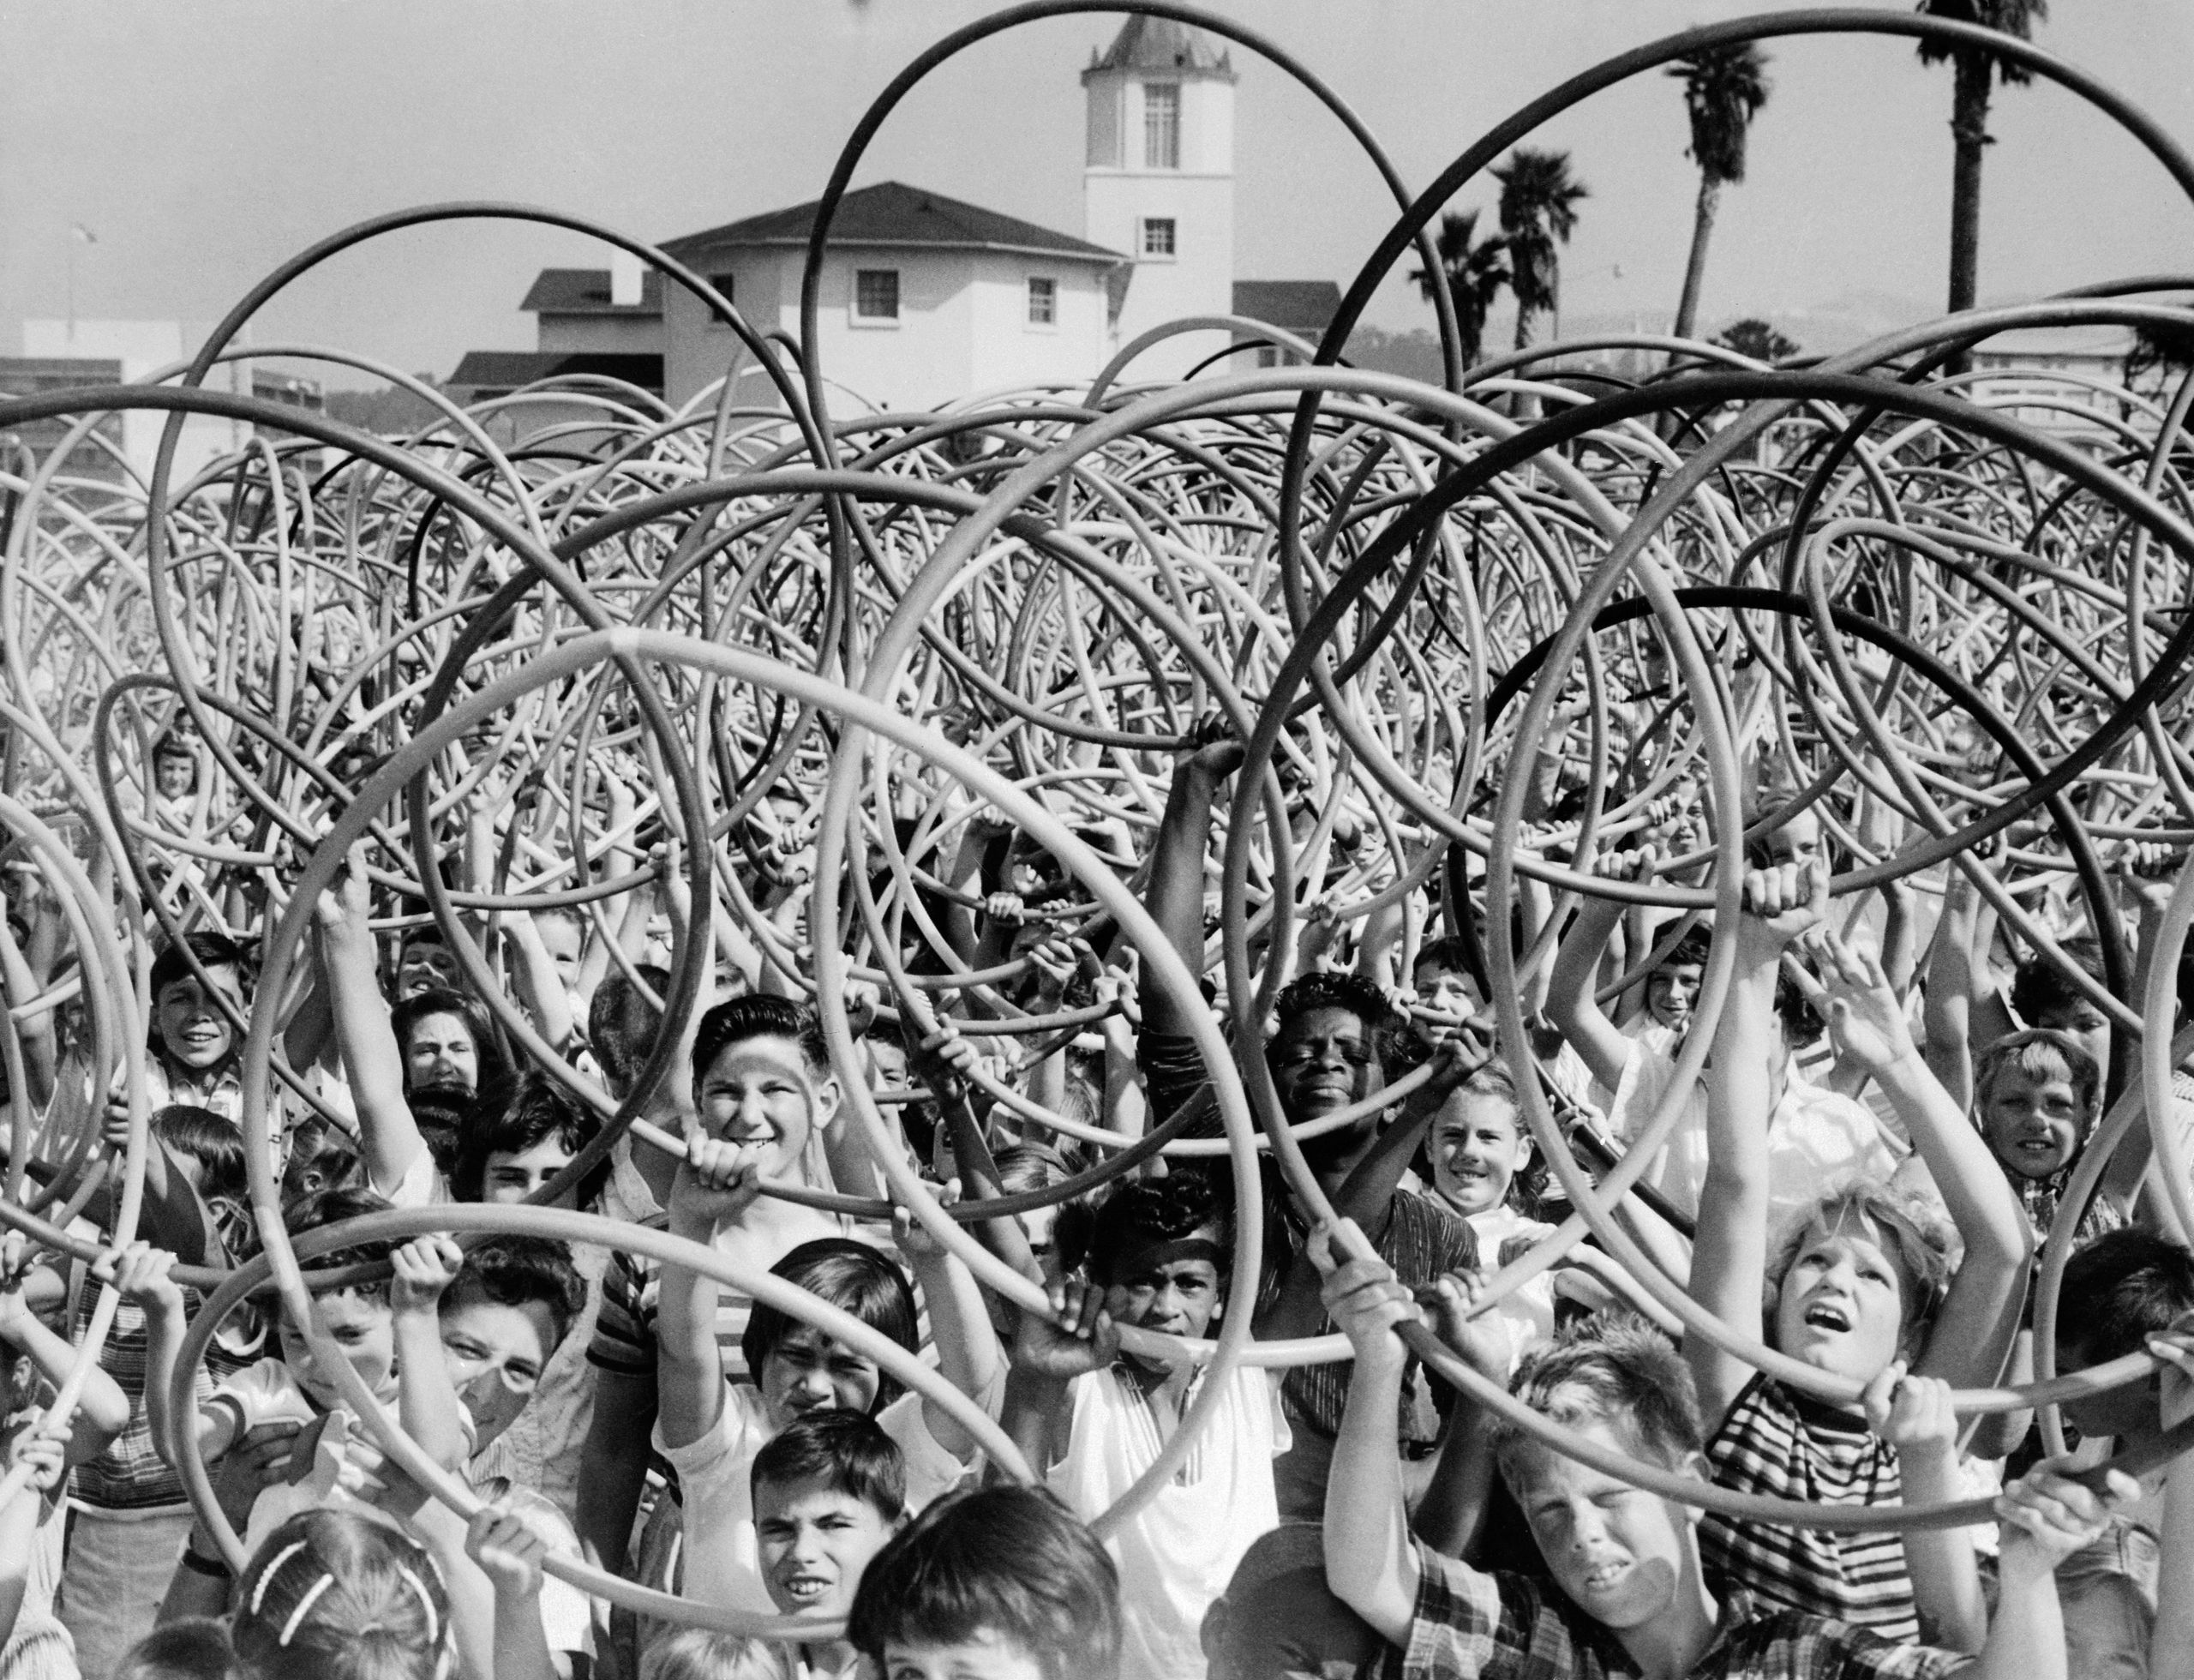 Kids hold up toy hoops in San Francisco circa 1958.